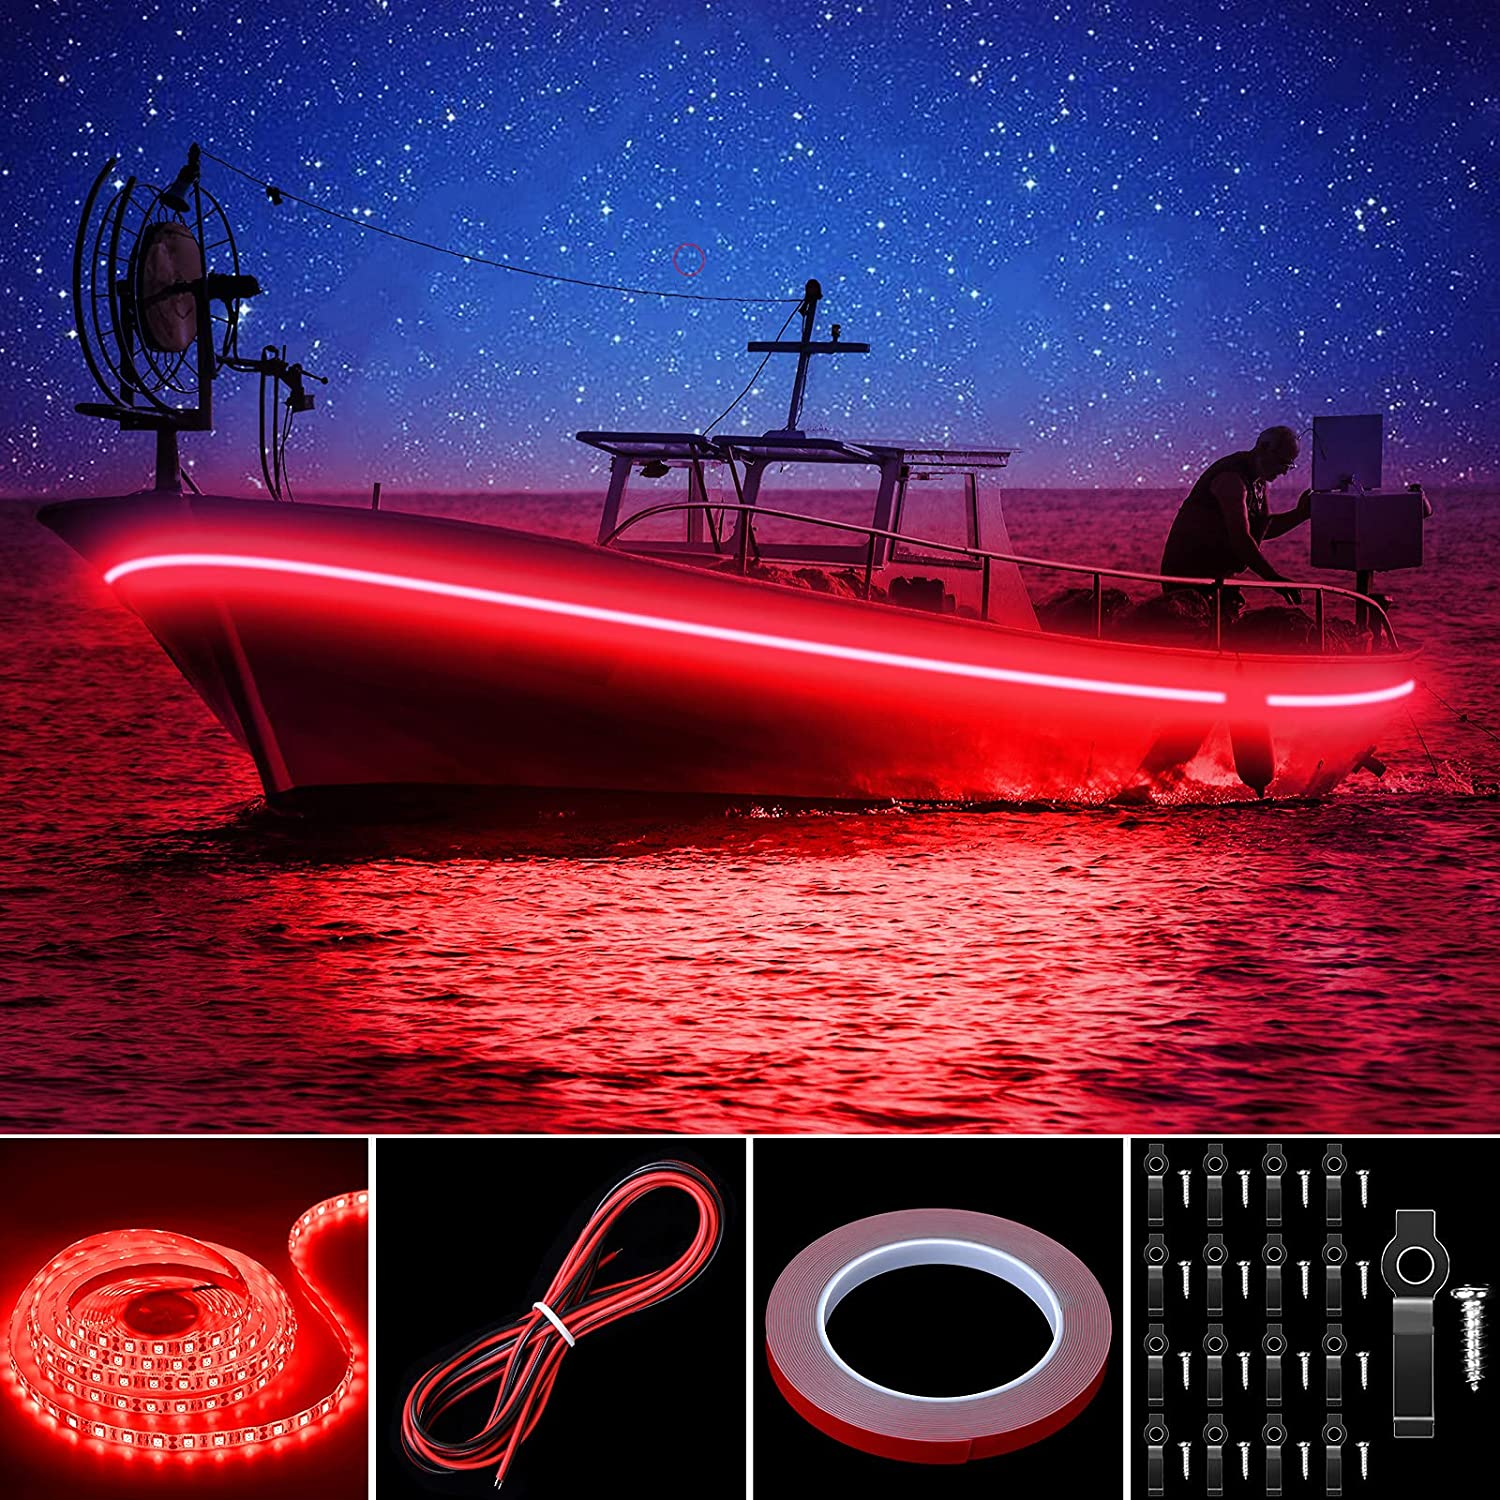 Pontoon LED Strip Lights, 16.4FT 12V Waterproof Marine Boat Interior Courtesy Lights, Under Deck Night Fishing Lights with Mounting Brackets Adhesive Tape and Extension Cable for Pontoon Boat (Green): Sports & Outdoors